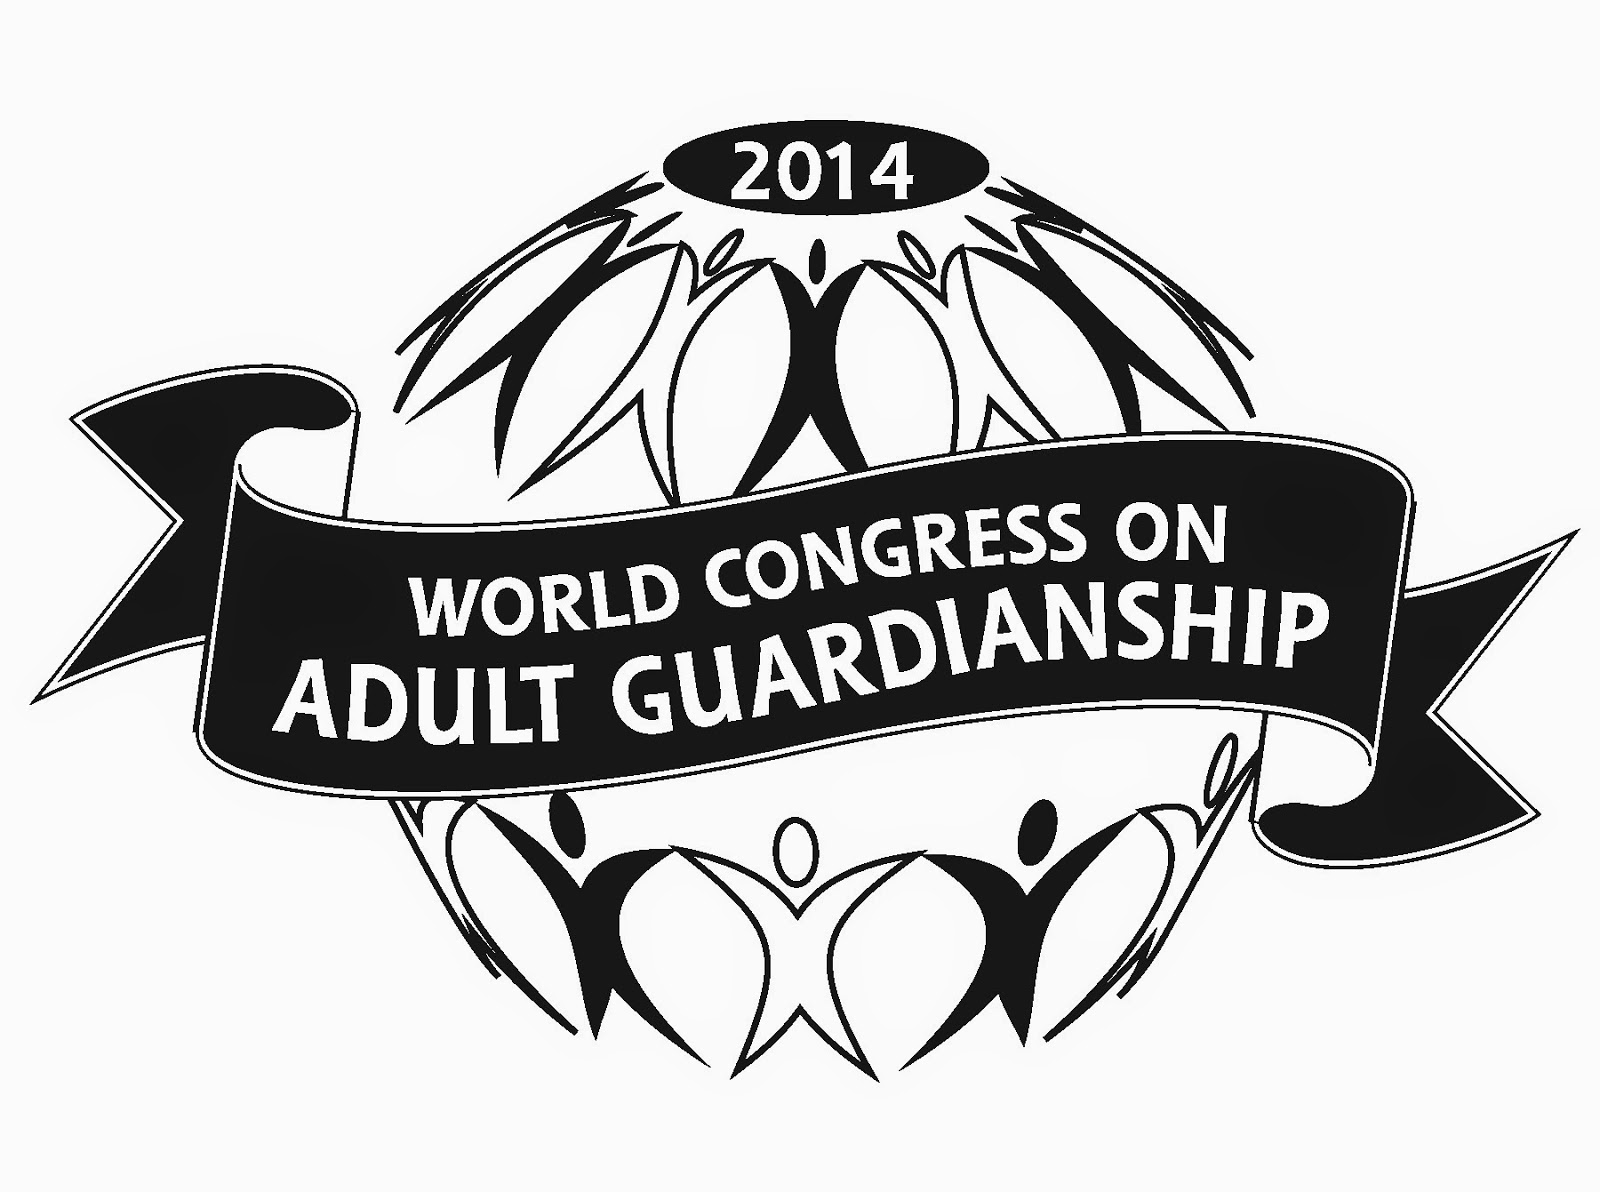 National Association to Stop Guardian Abuse: 2014-06-01